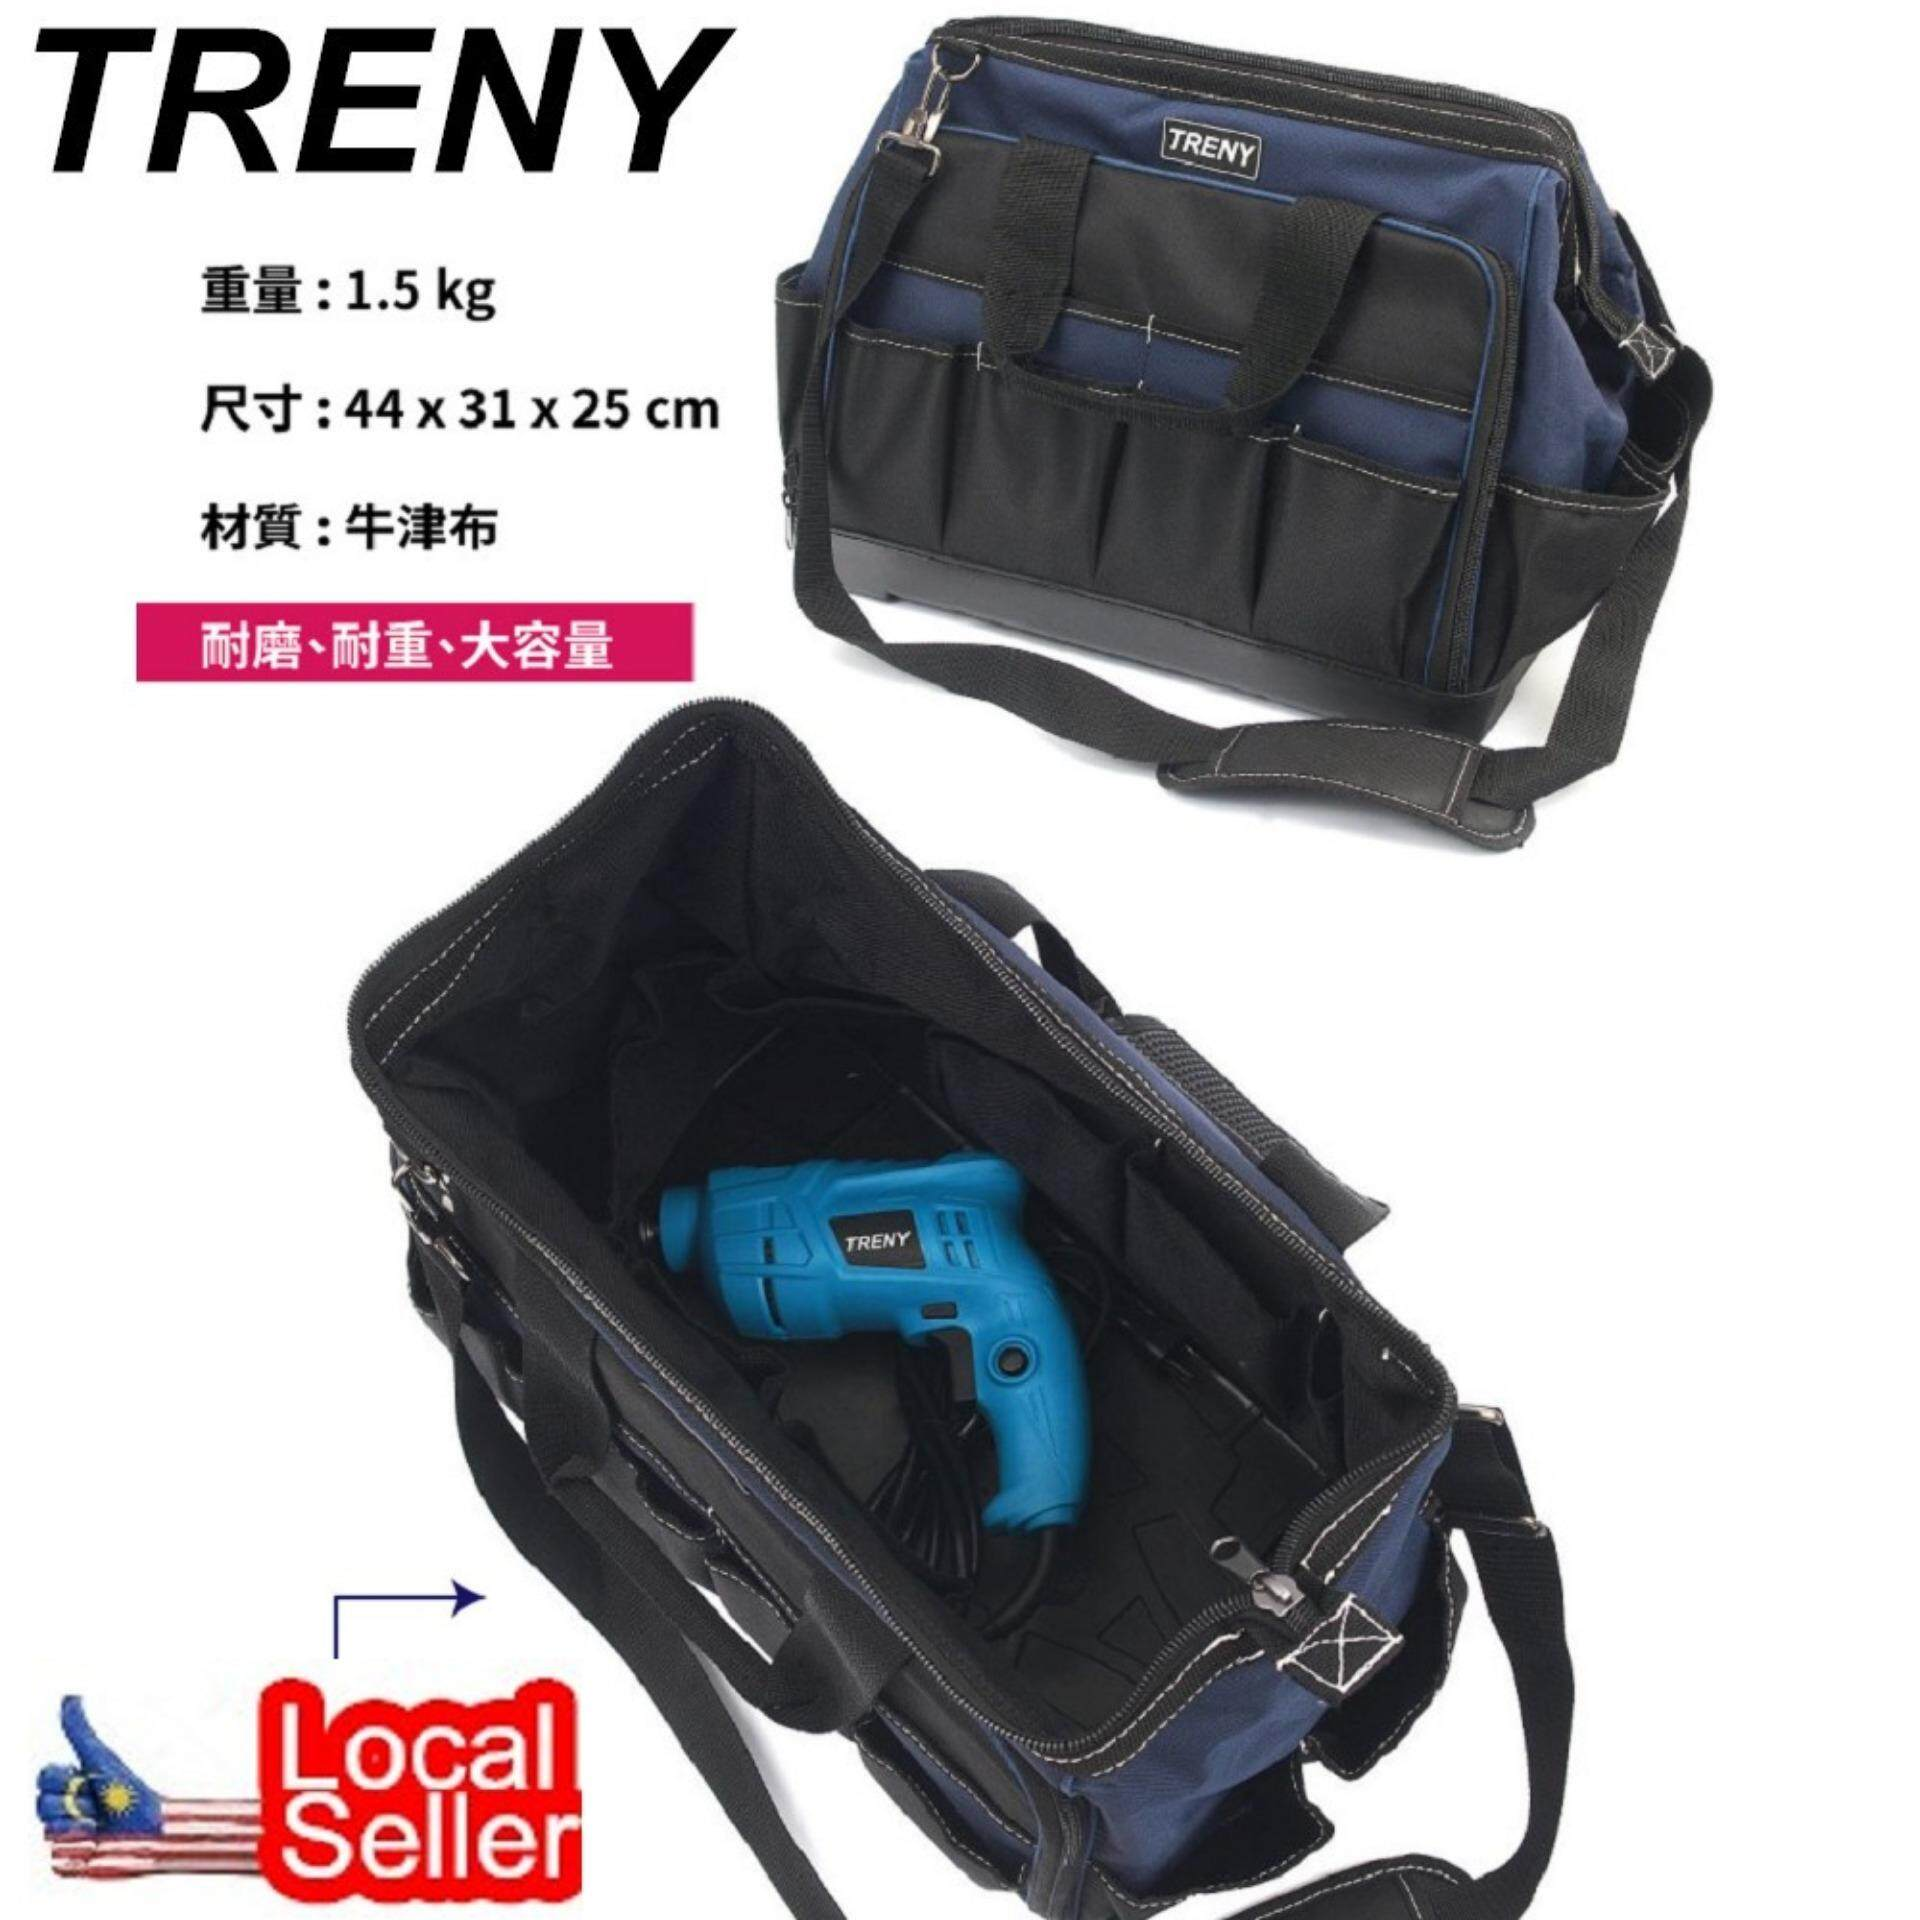 TRENY Tool Bag 17 Handyman Electrician Heavy Duty -16204